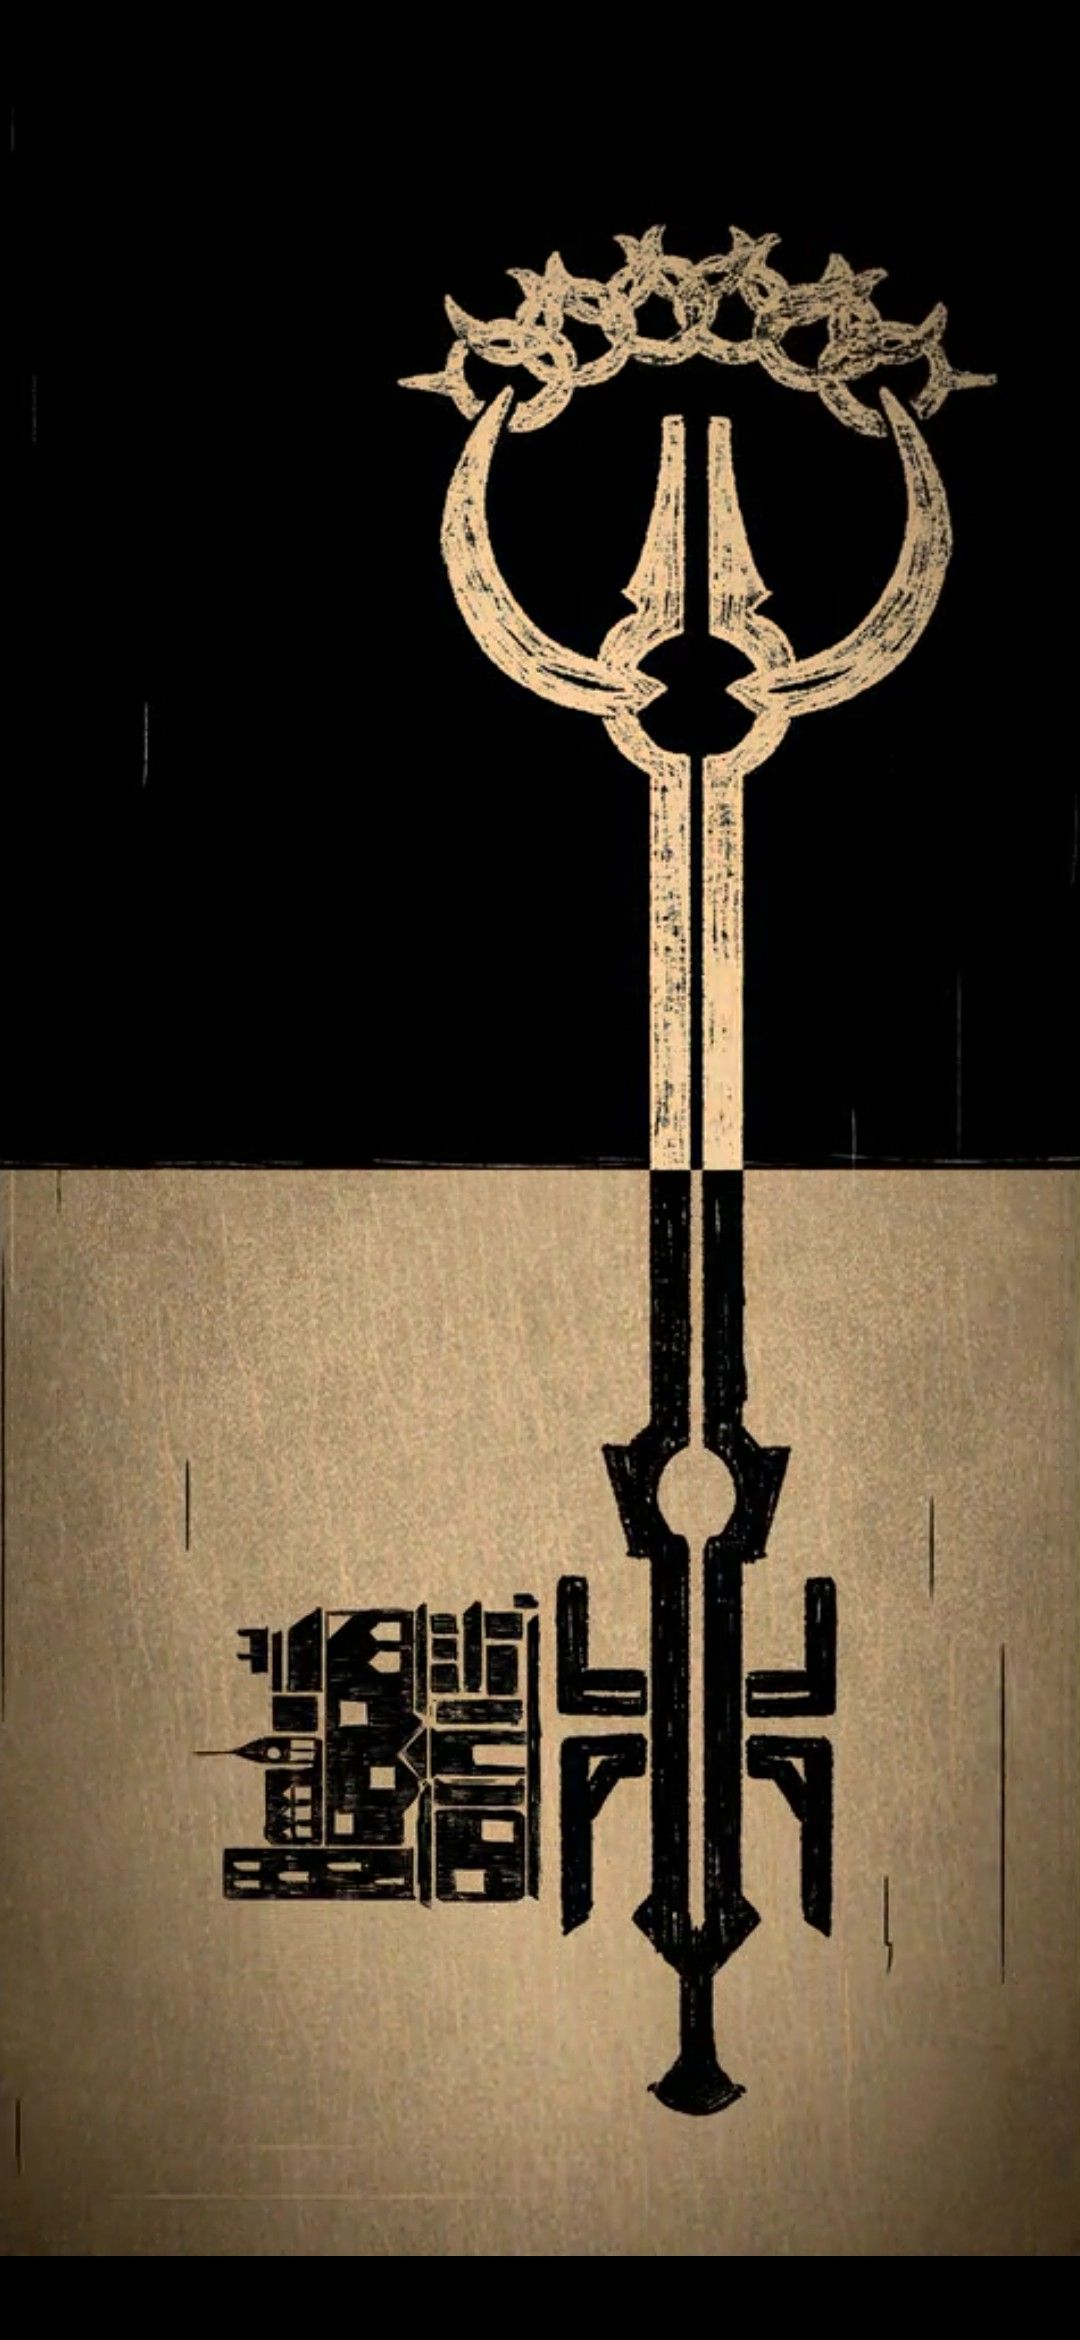 54 Locke And Key Ideas Key Keys Art Lock And Key